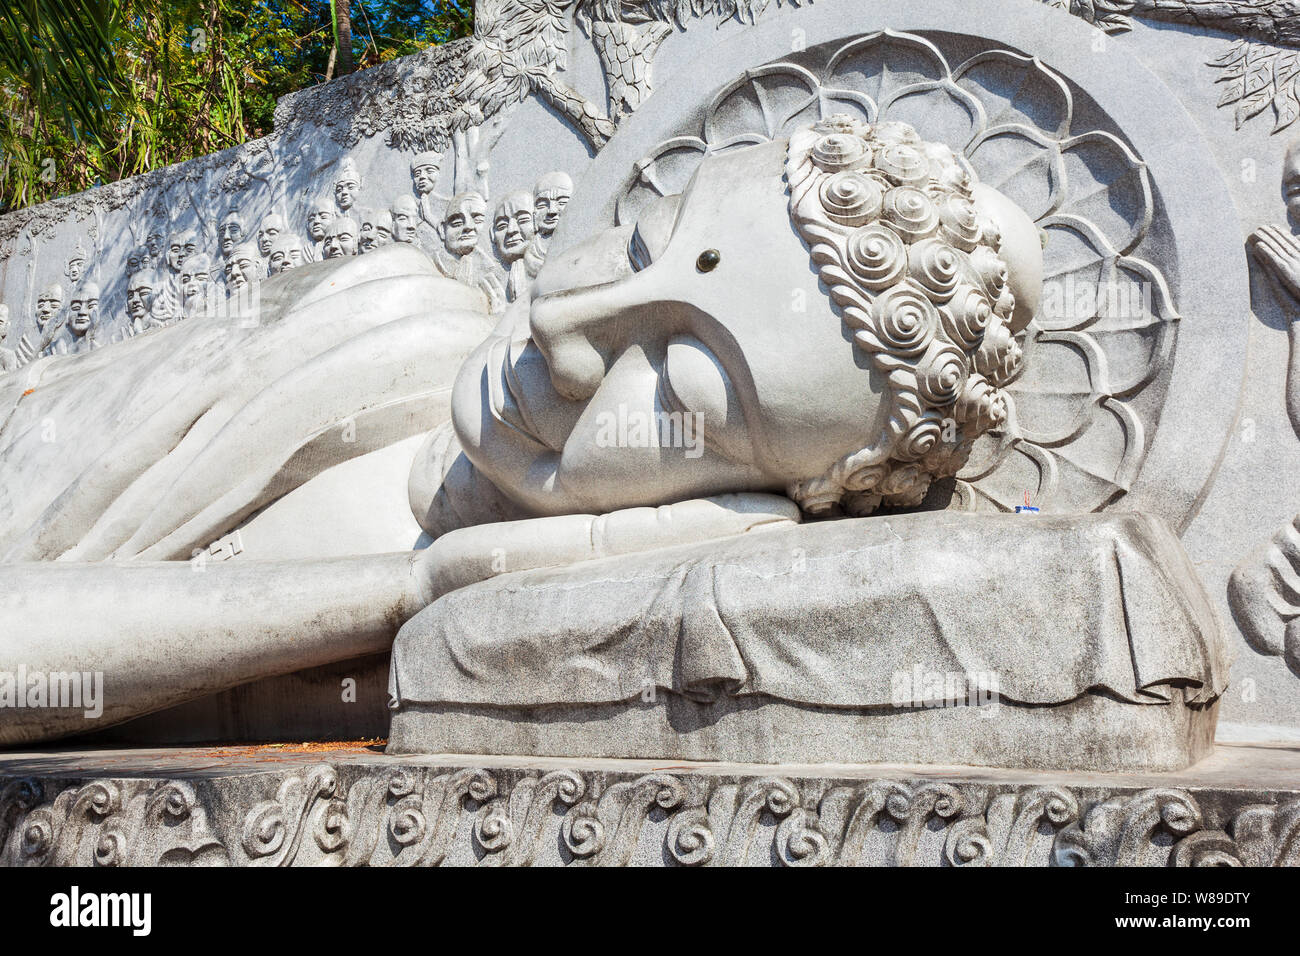 Reclining buddha statue at the Long Son Pagoda or Chua Long Son, a Buddhist temple in the city of Nha Trang in south Vietnam Stock Photo